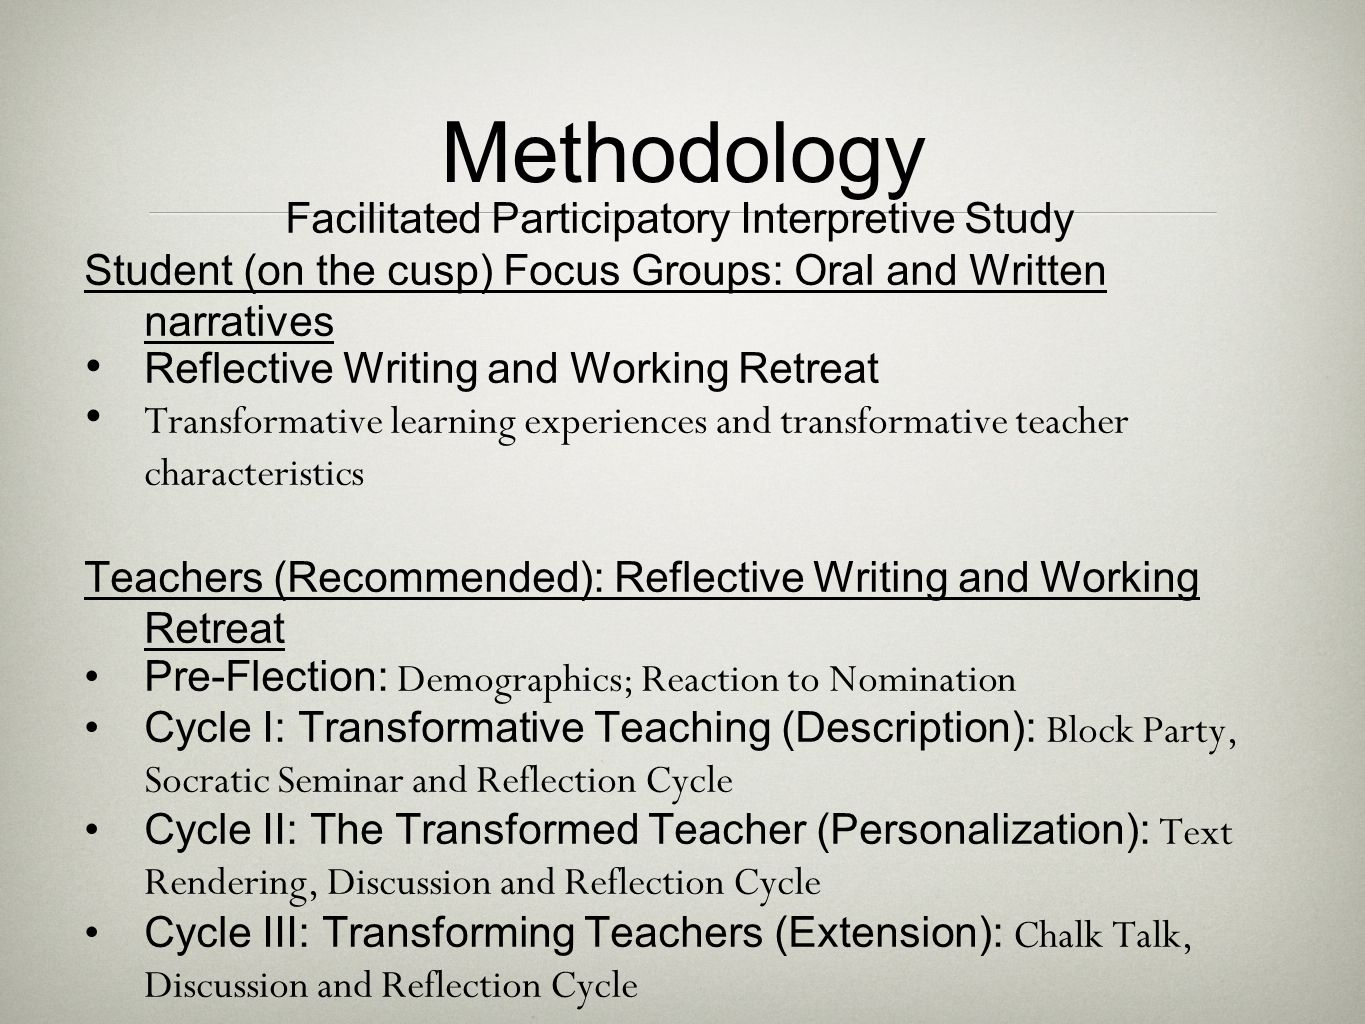 Methodology Facilitated Participatory Interpretive Study Student (on the cusp) Focus Groups: Oral and Written narratives Reflective Writing and Working Retreat Transformative learning experiences and transformative teacher characteristics Teachers (Recommended): Reflective Writing and Working Retreat Pre-Flection: Demographics; Reaction to Nomination Cycle I: Transformative Teaching (Description): Block Party, Socratic Seminar and Reflection Cycle Cycle II: The Transformed Teacher (Personalization): Text Rendering, Discussion and Reflection Cycle Cycle III: Transforming Teachers (Extension): Chalk Talk, Discussion and Reflection Cycle